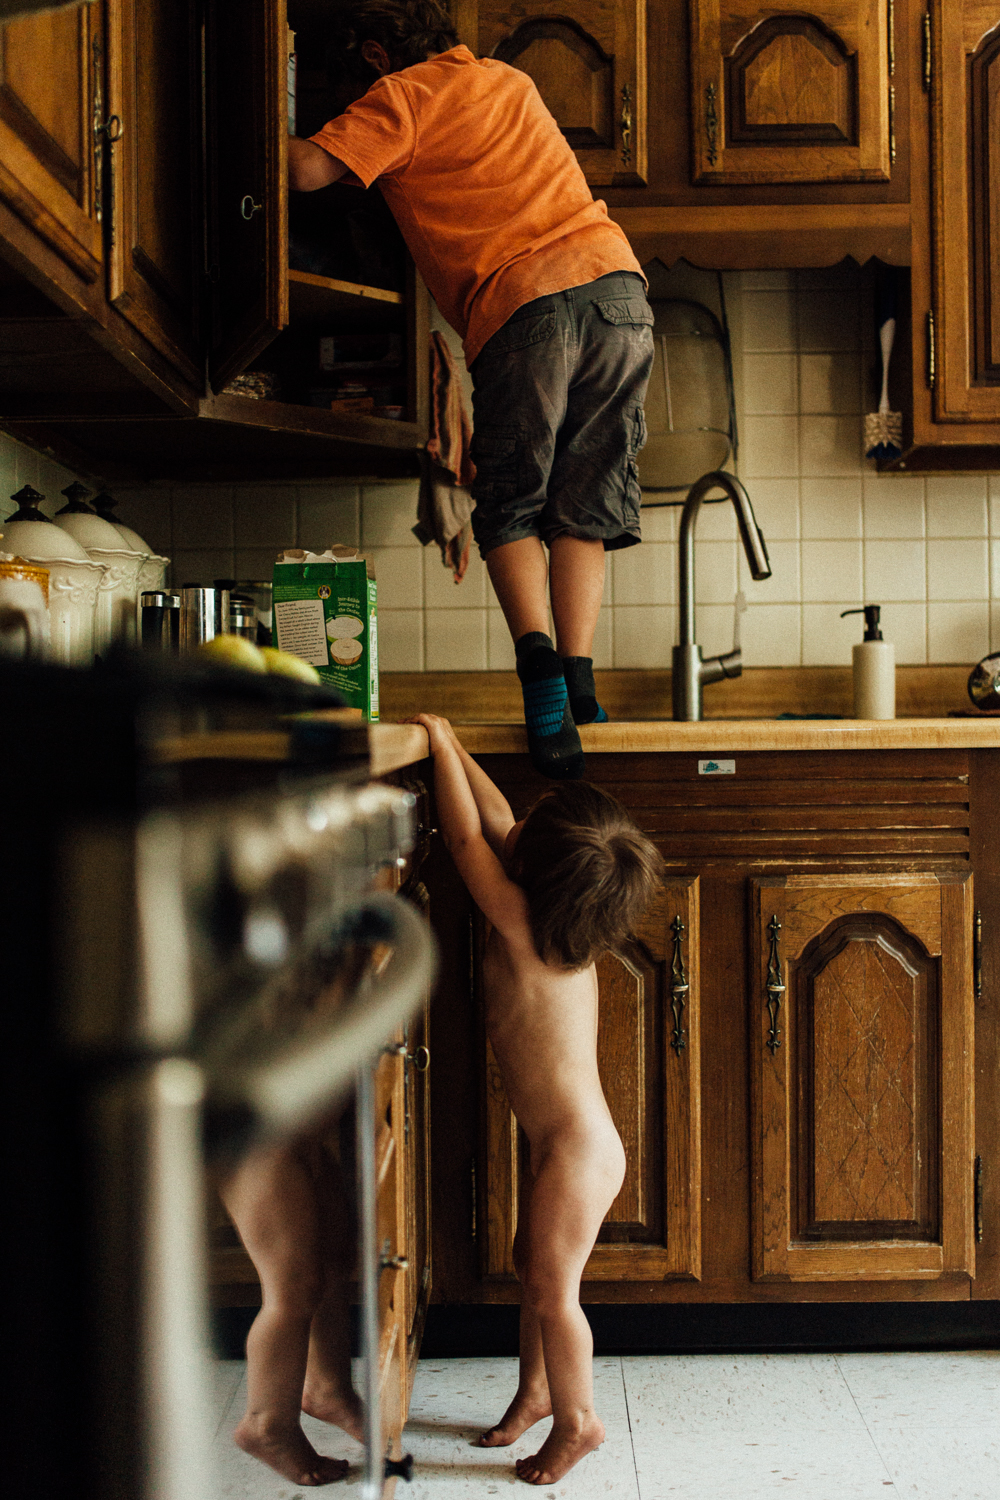 brothers-climbing-on-kitchen-counter-to-sneak-treats-Nikol-family-in-home-photo-session-with-jen-fairchild-photography-sugarhouse-slc-ut